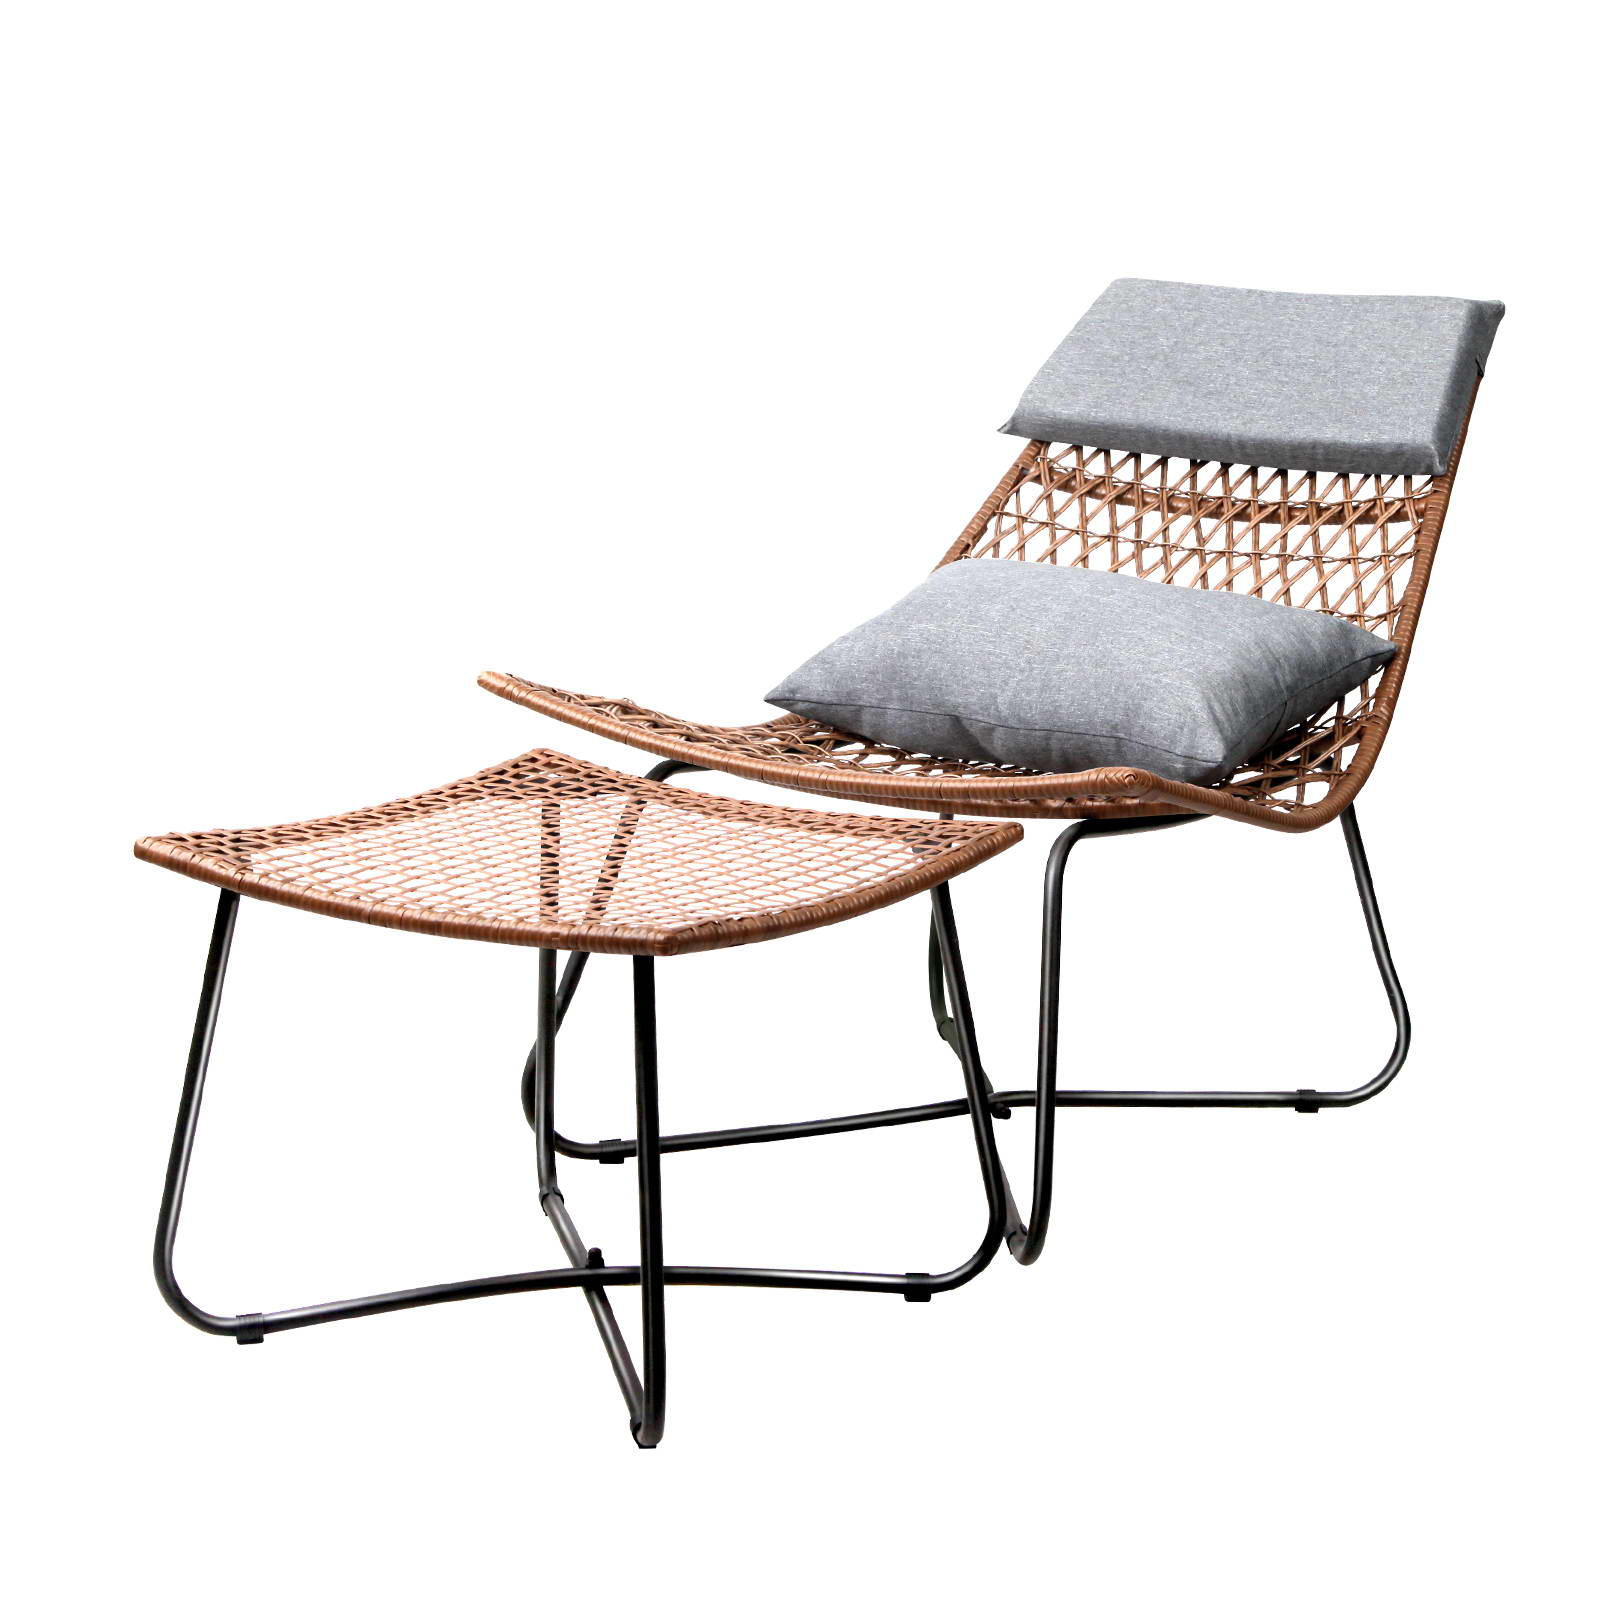 cheap sun lounge chairs folding chair decorative covers outdoor furniture set day bed rattan pe